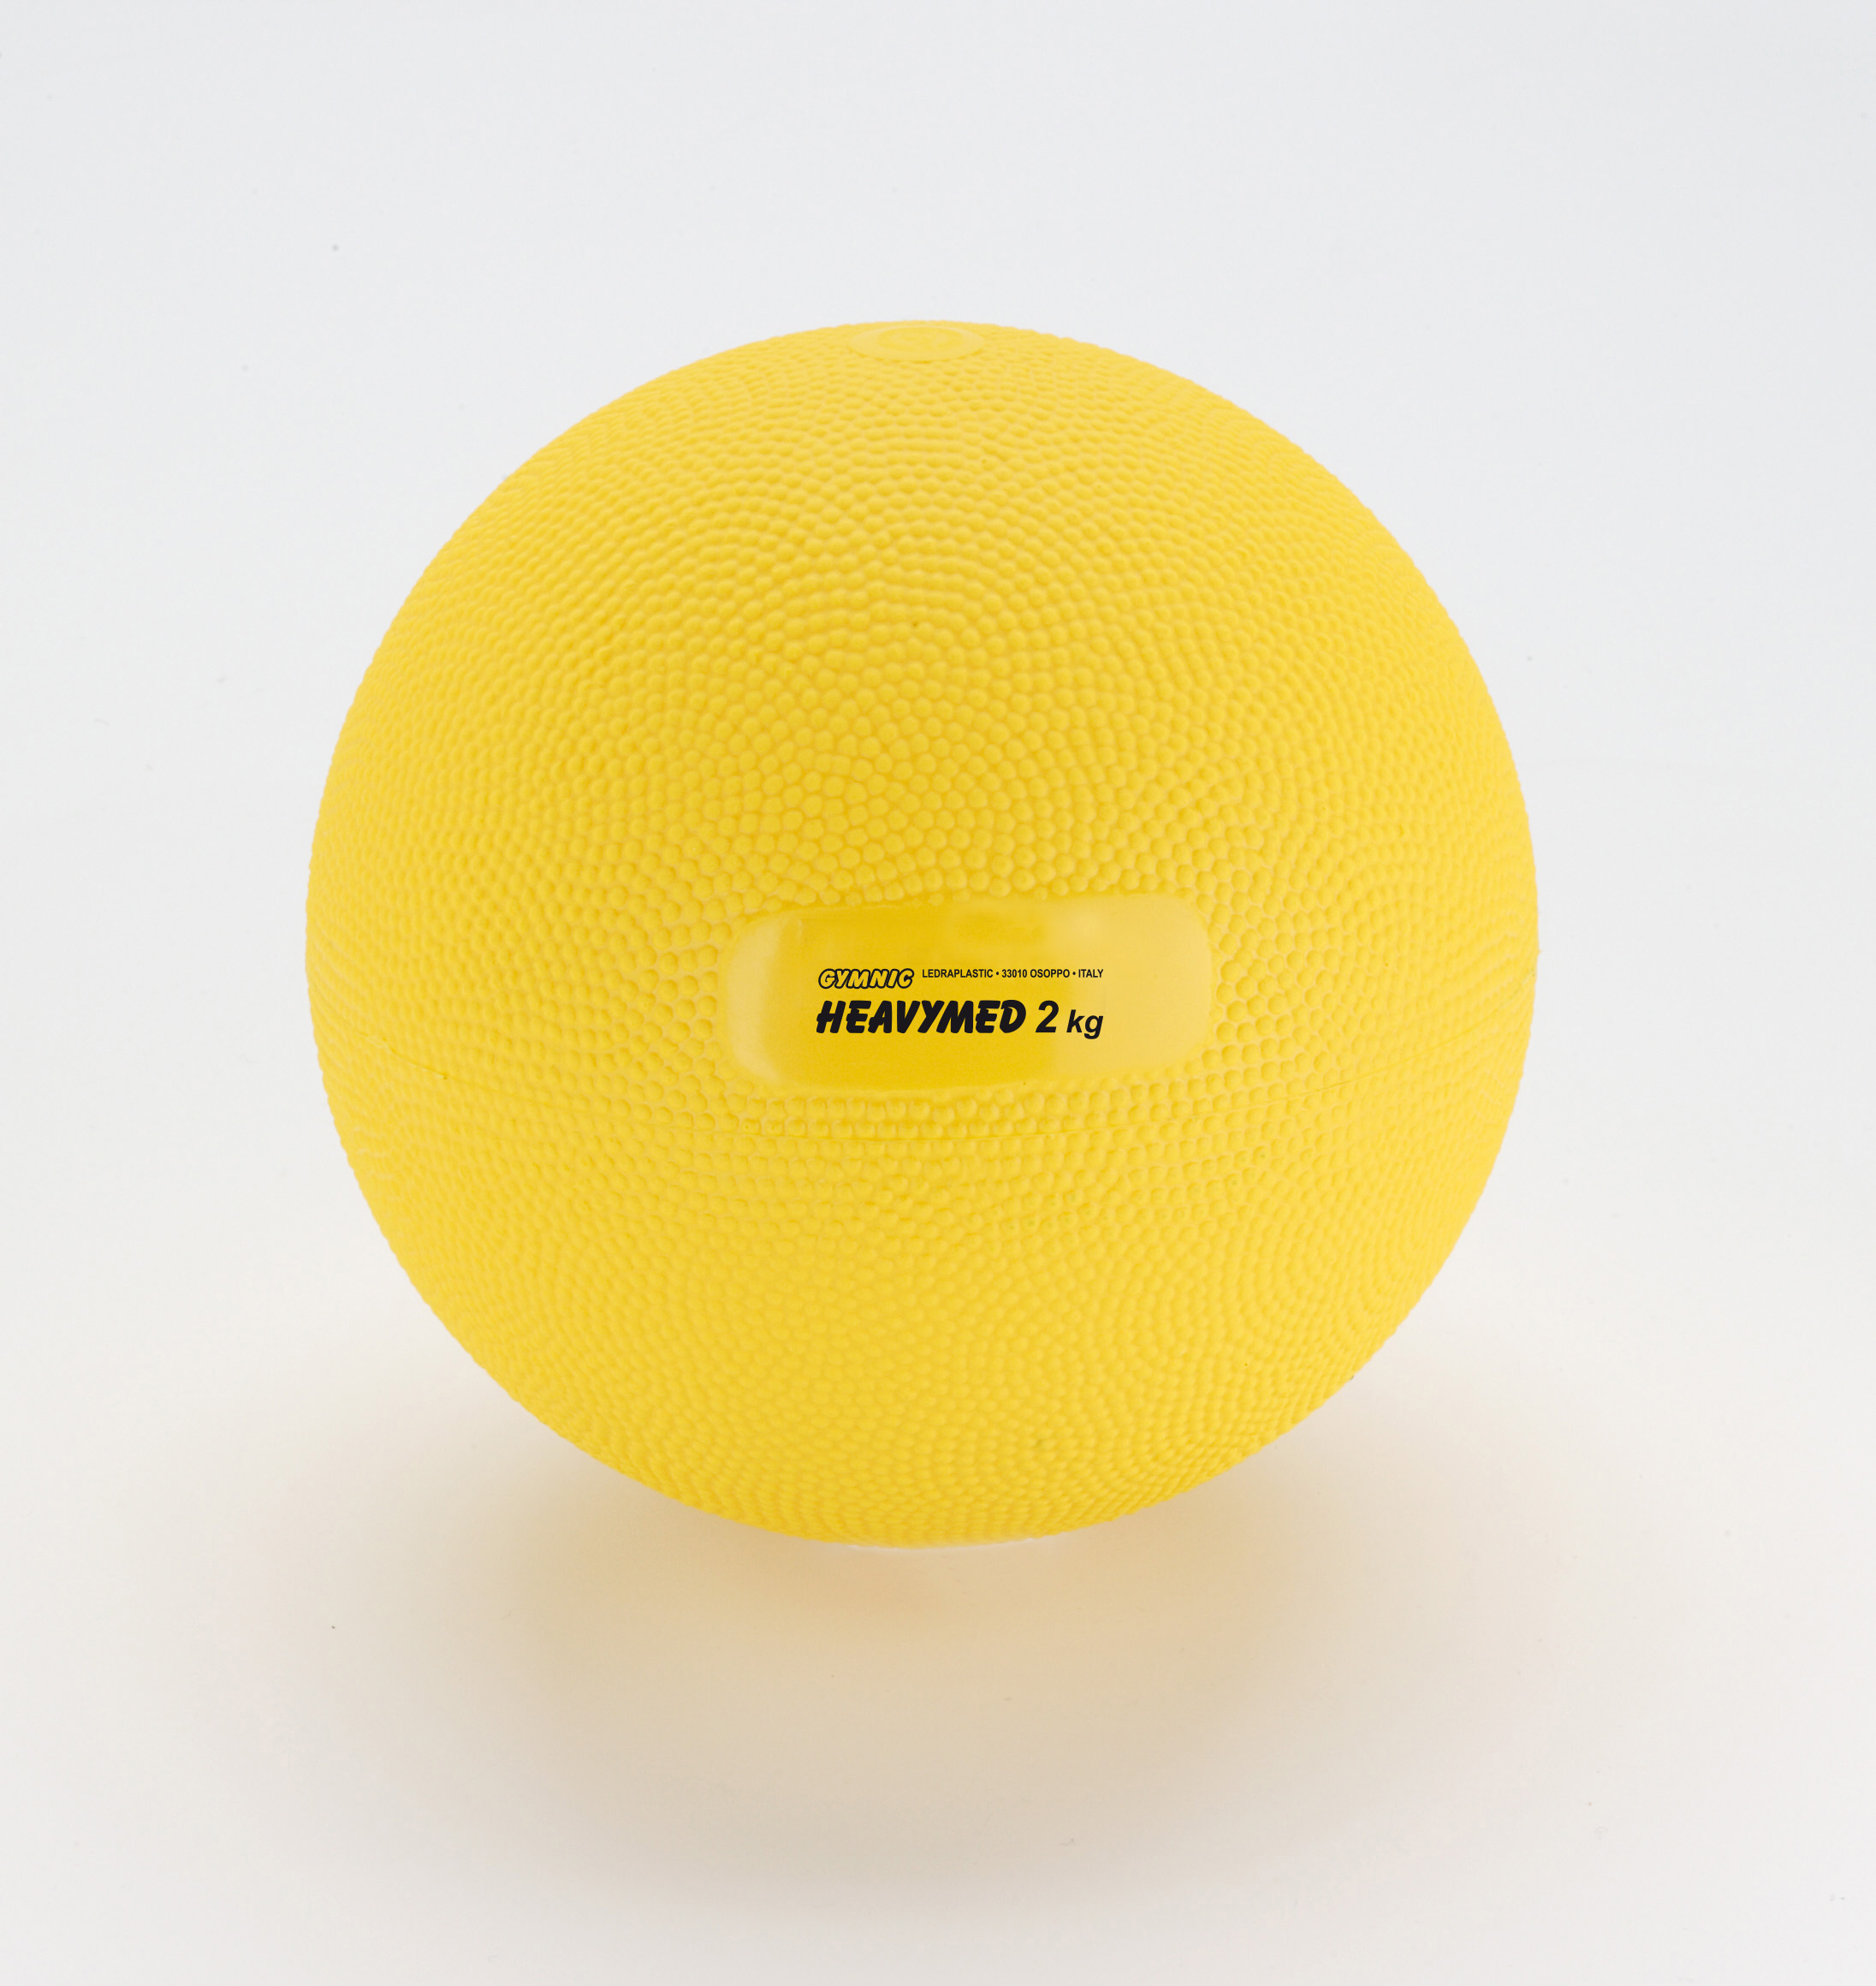 Details about  /Gymnic Heavymed Exercise Balls